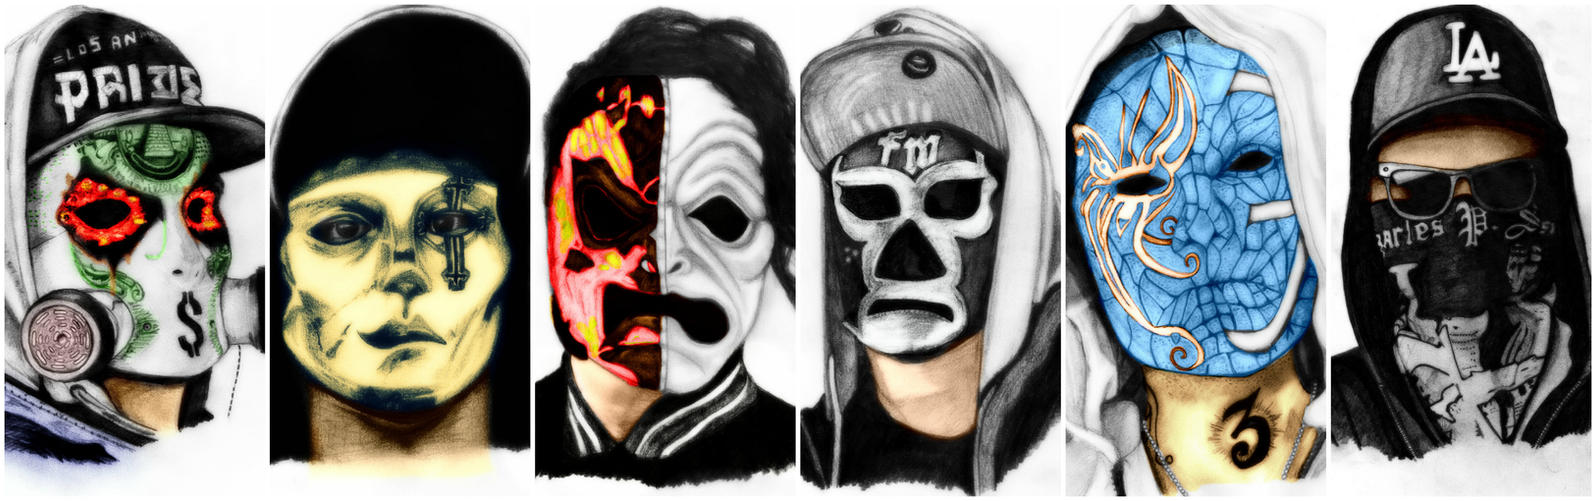 Hollywood Undead (colour) by deathlouis on DeviantArt